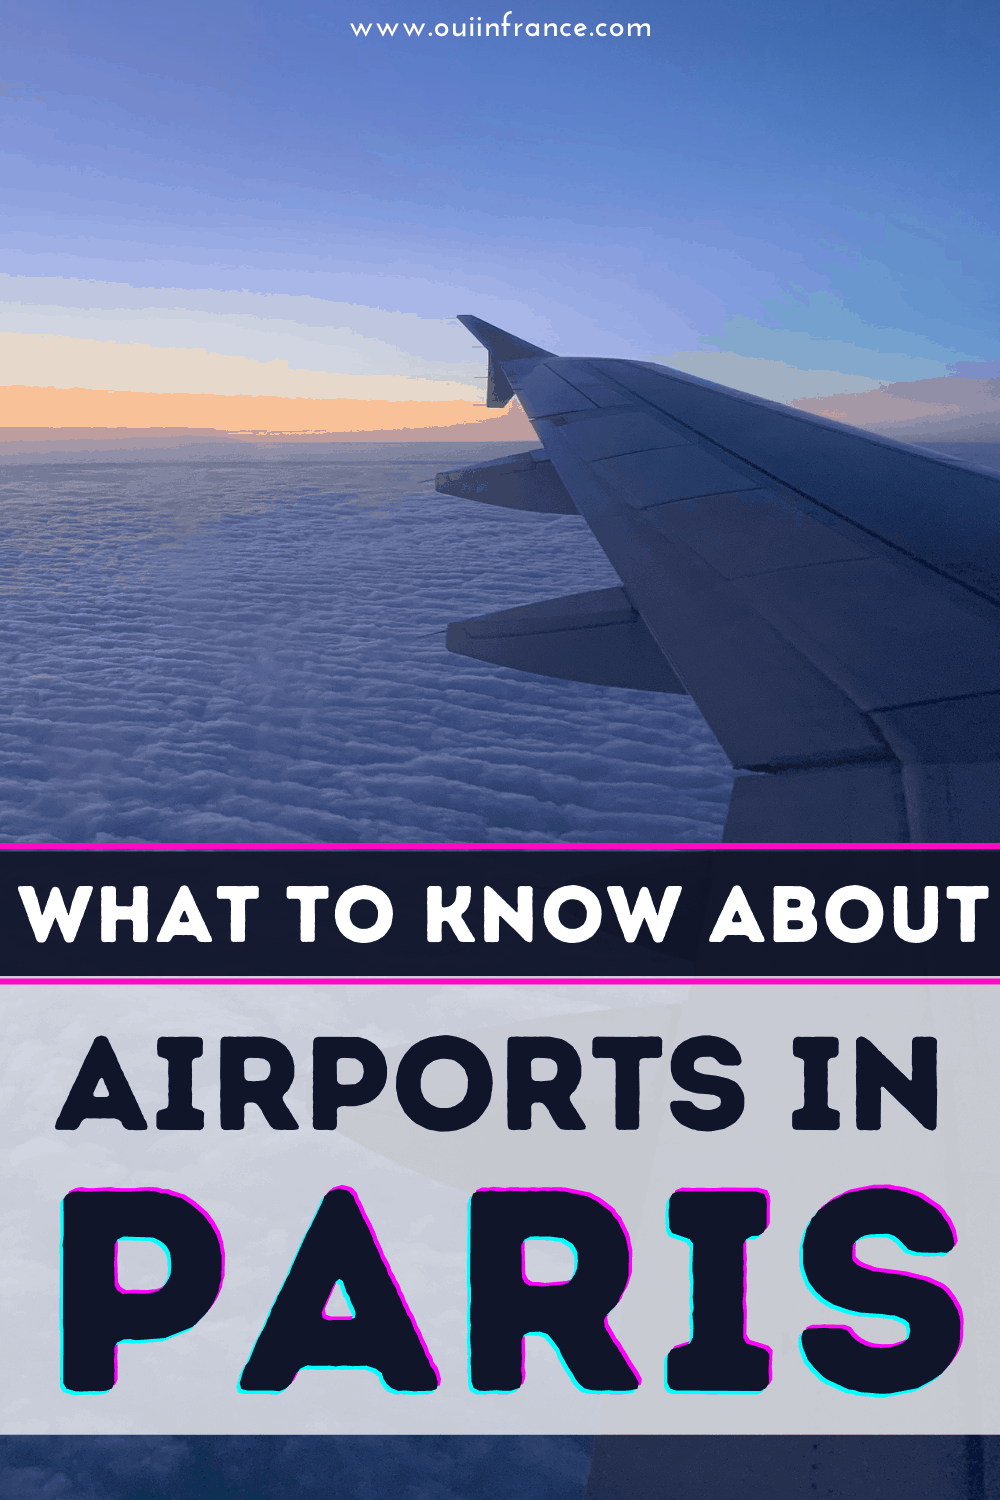 airports in paris guide